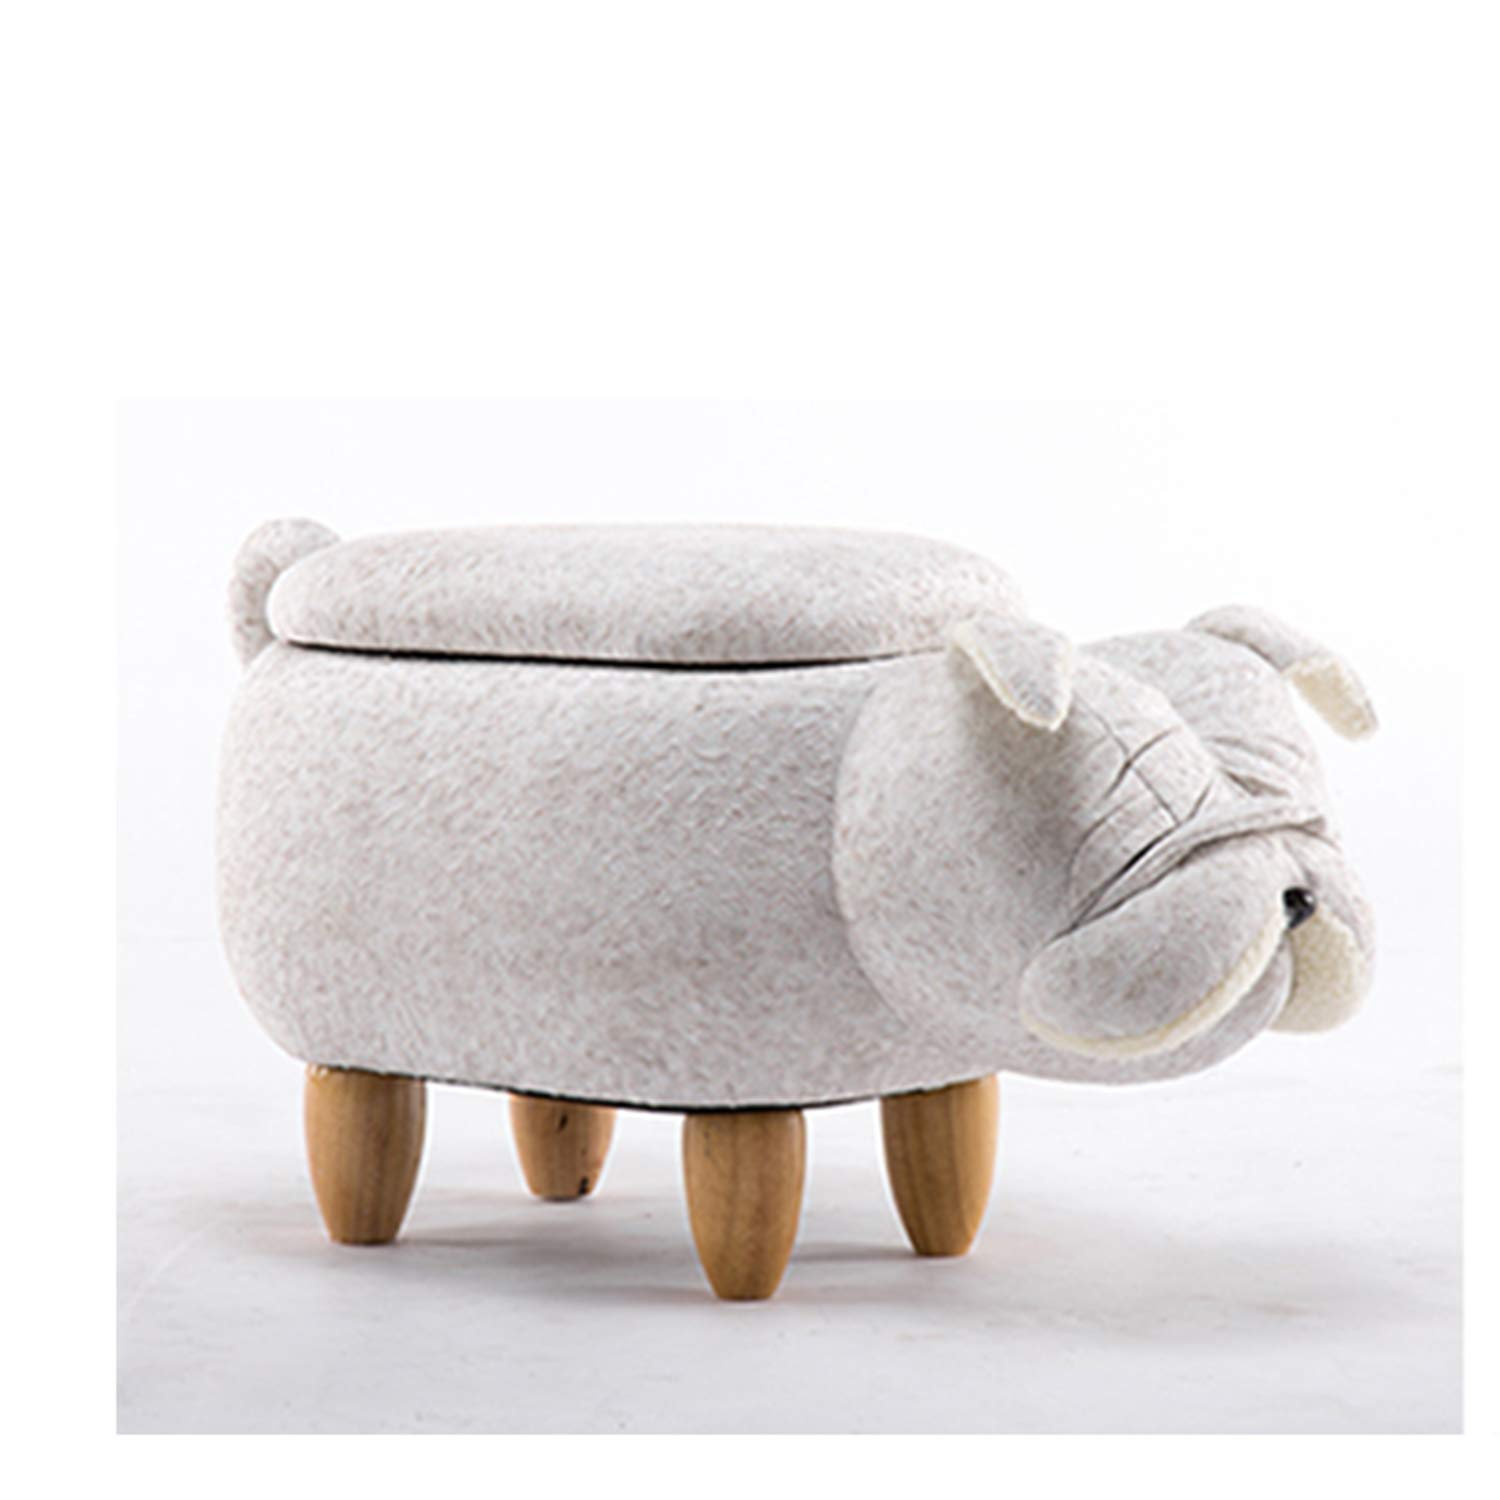 QYQCX Puppy Footstool, Children's Storage Stool, Soft Seat, Makeup Stool, Ottoman for Change Shoes White